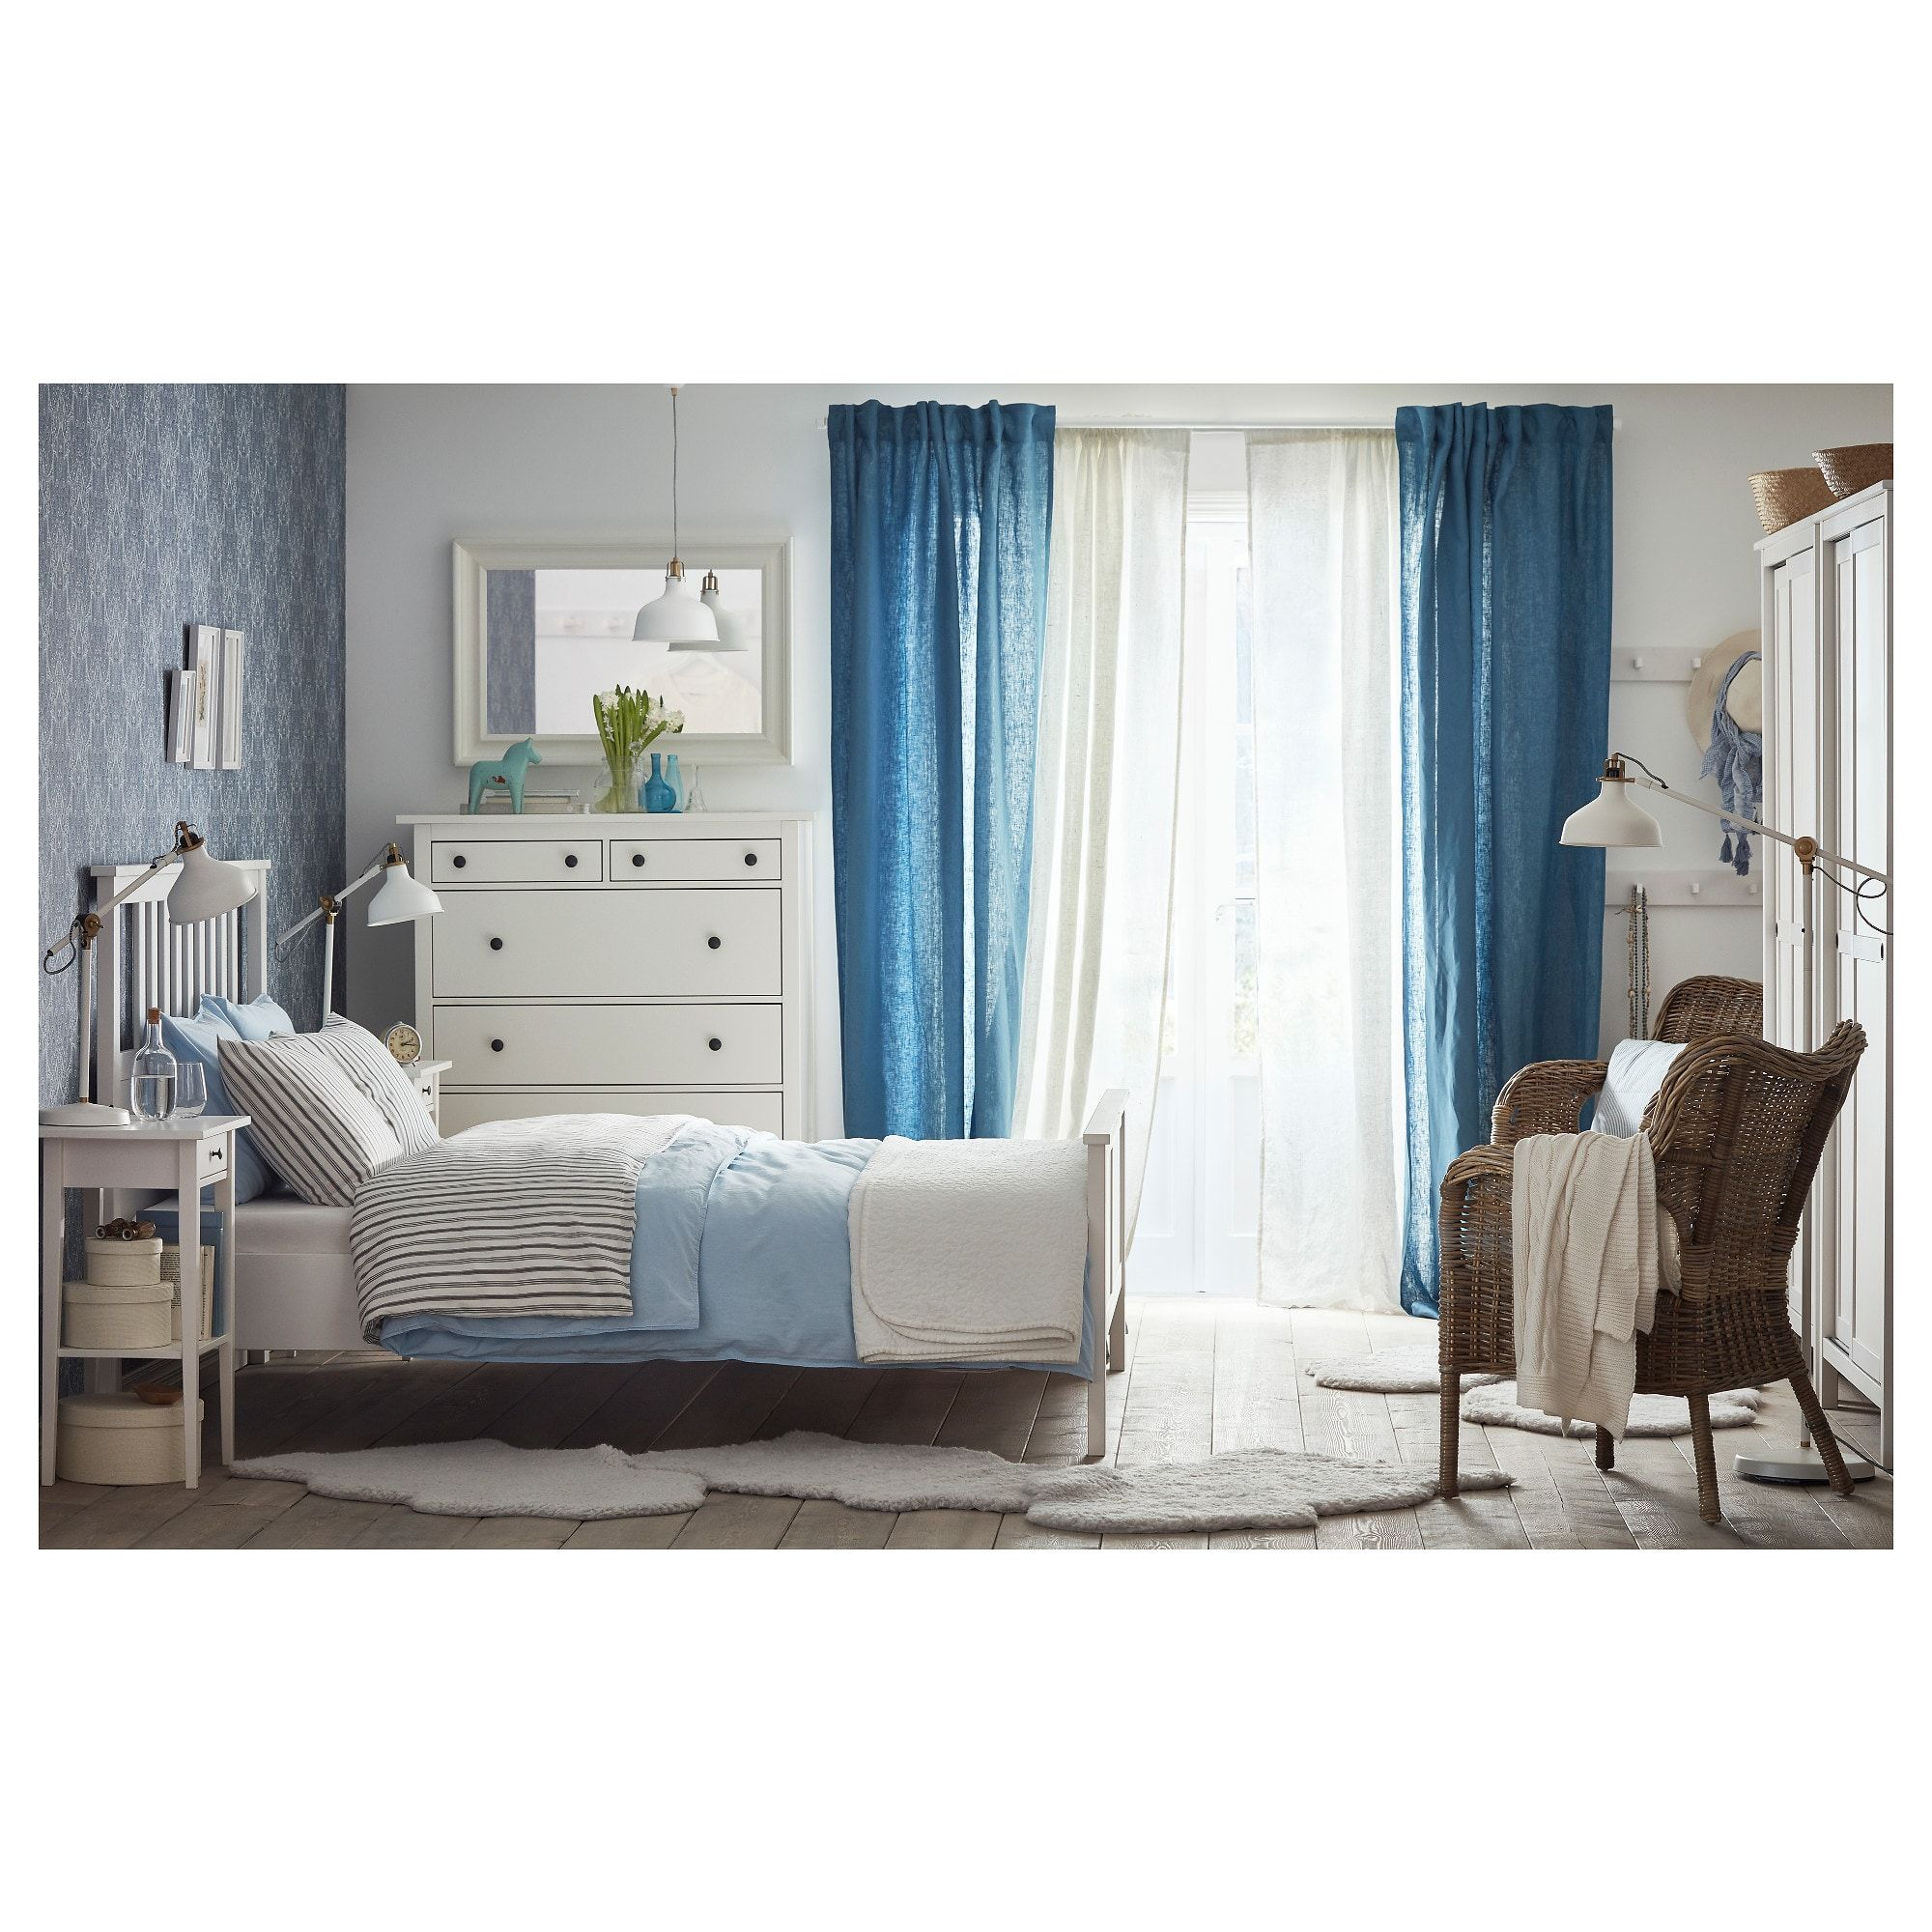 Shop for Furniture, Home Accessories & More Bedroom